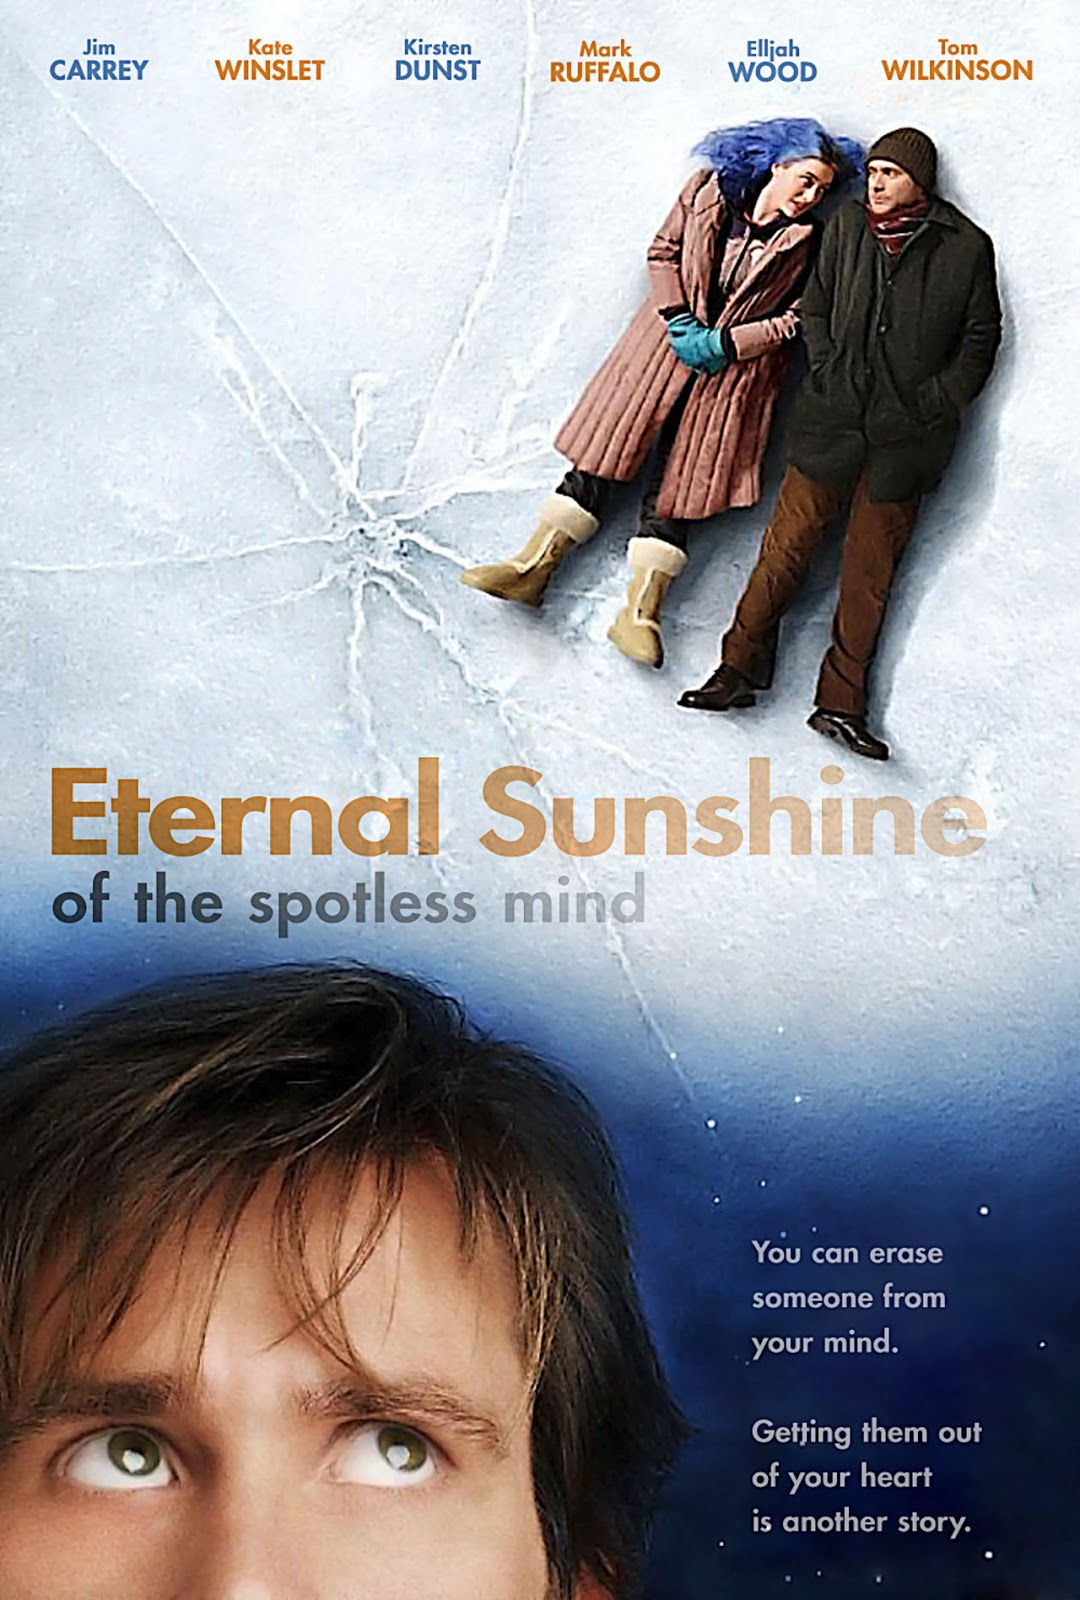 The theatrical release poster for Eternal Sunshine of the Spotless Mind. The image is a photomontage of two photographs. The main photograph (which covers the entire poster) depicts the two main characters lying on a frozen sheet of ice in the top-right corner. In the bottom-left corner the face of Jim Carrey (who plays one of the main characters) is overlayed and he is looking towards the top-right corner of the image.